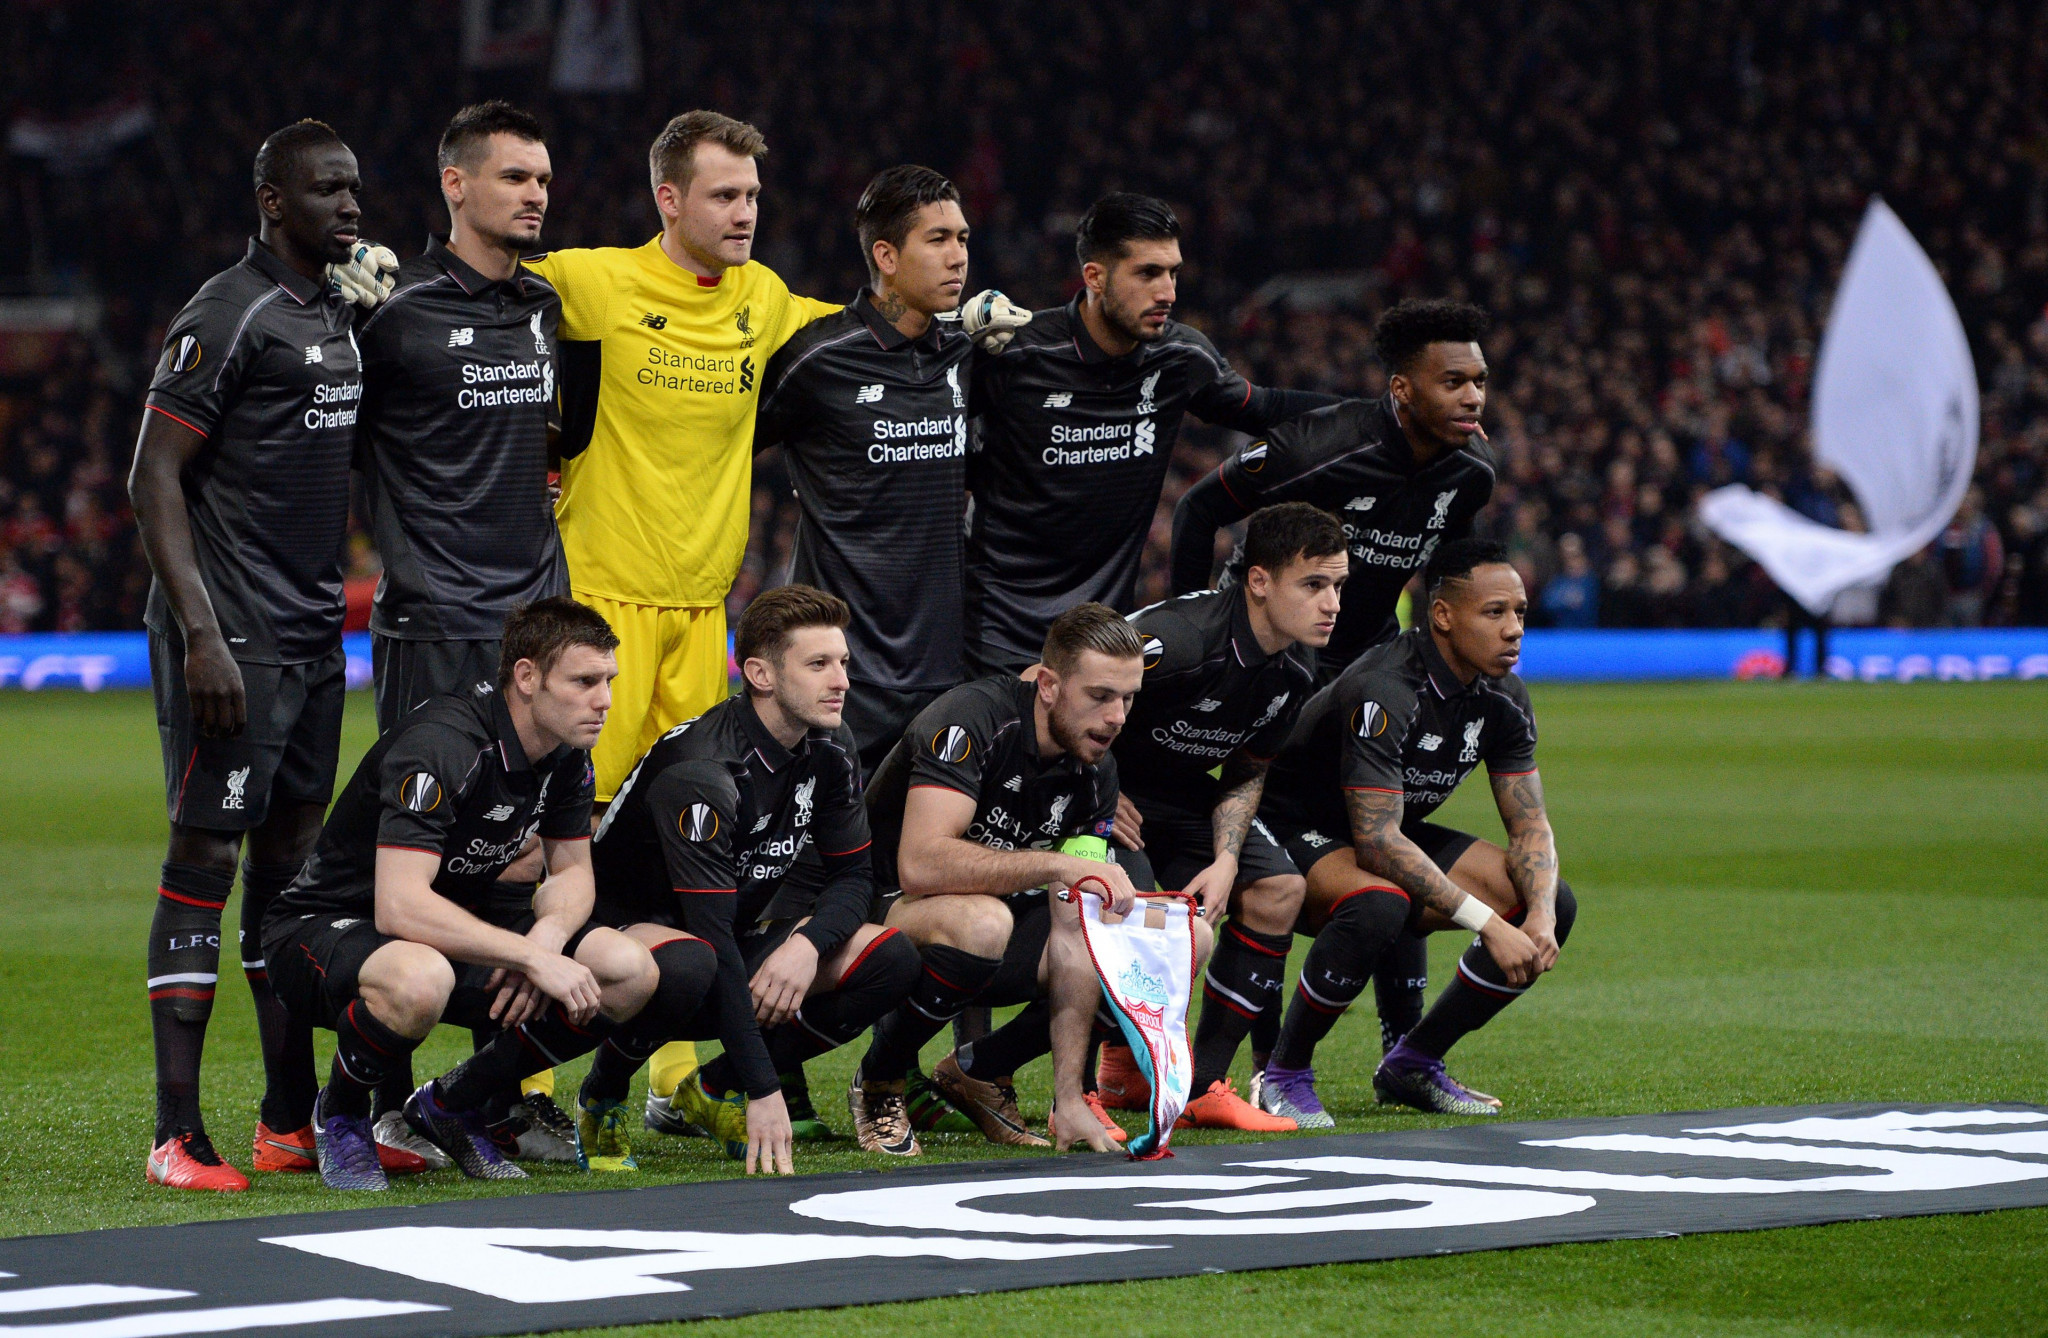 The dispute stemmed from an anti-doping test taken by Mamadou Sakho, far left, following Liverpool's Europa League victory over rivals Manchester United in March 2016 ©Getty Images